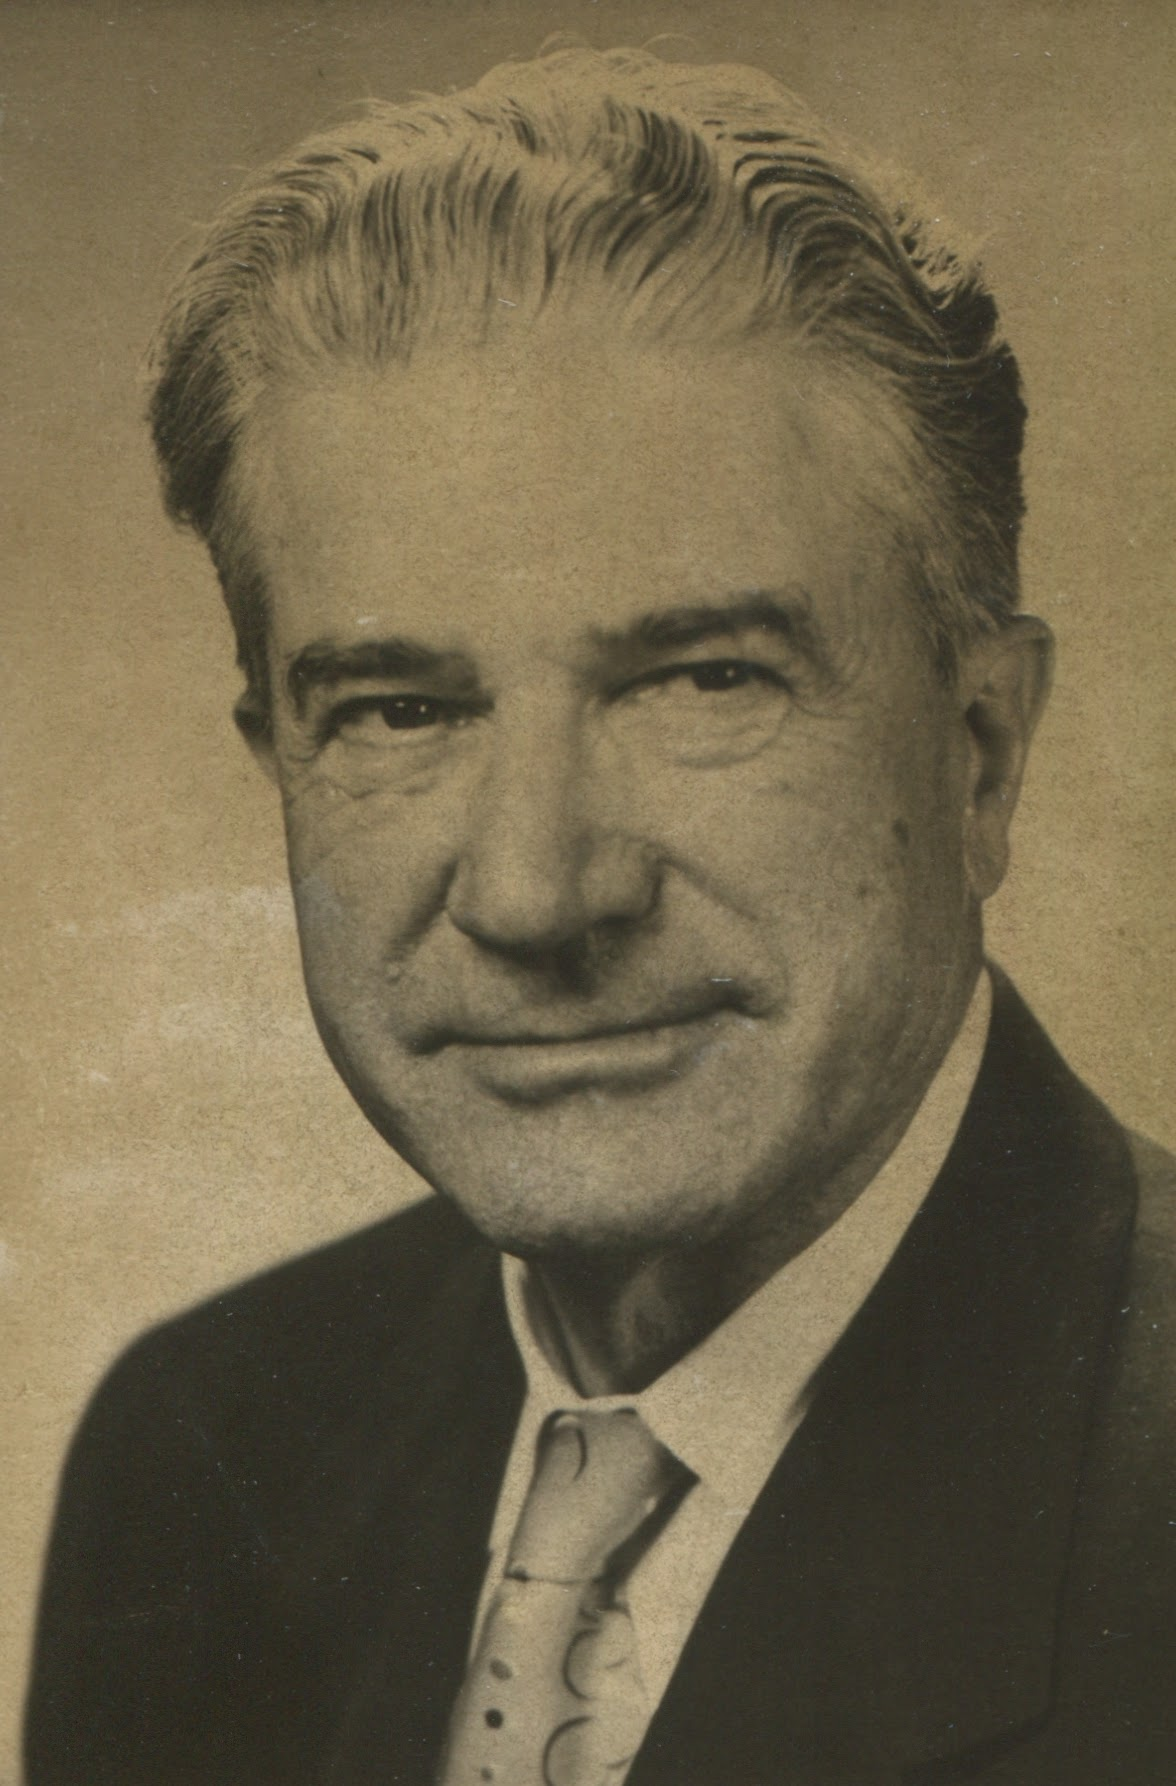 Clyde Muchmore